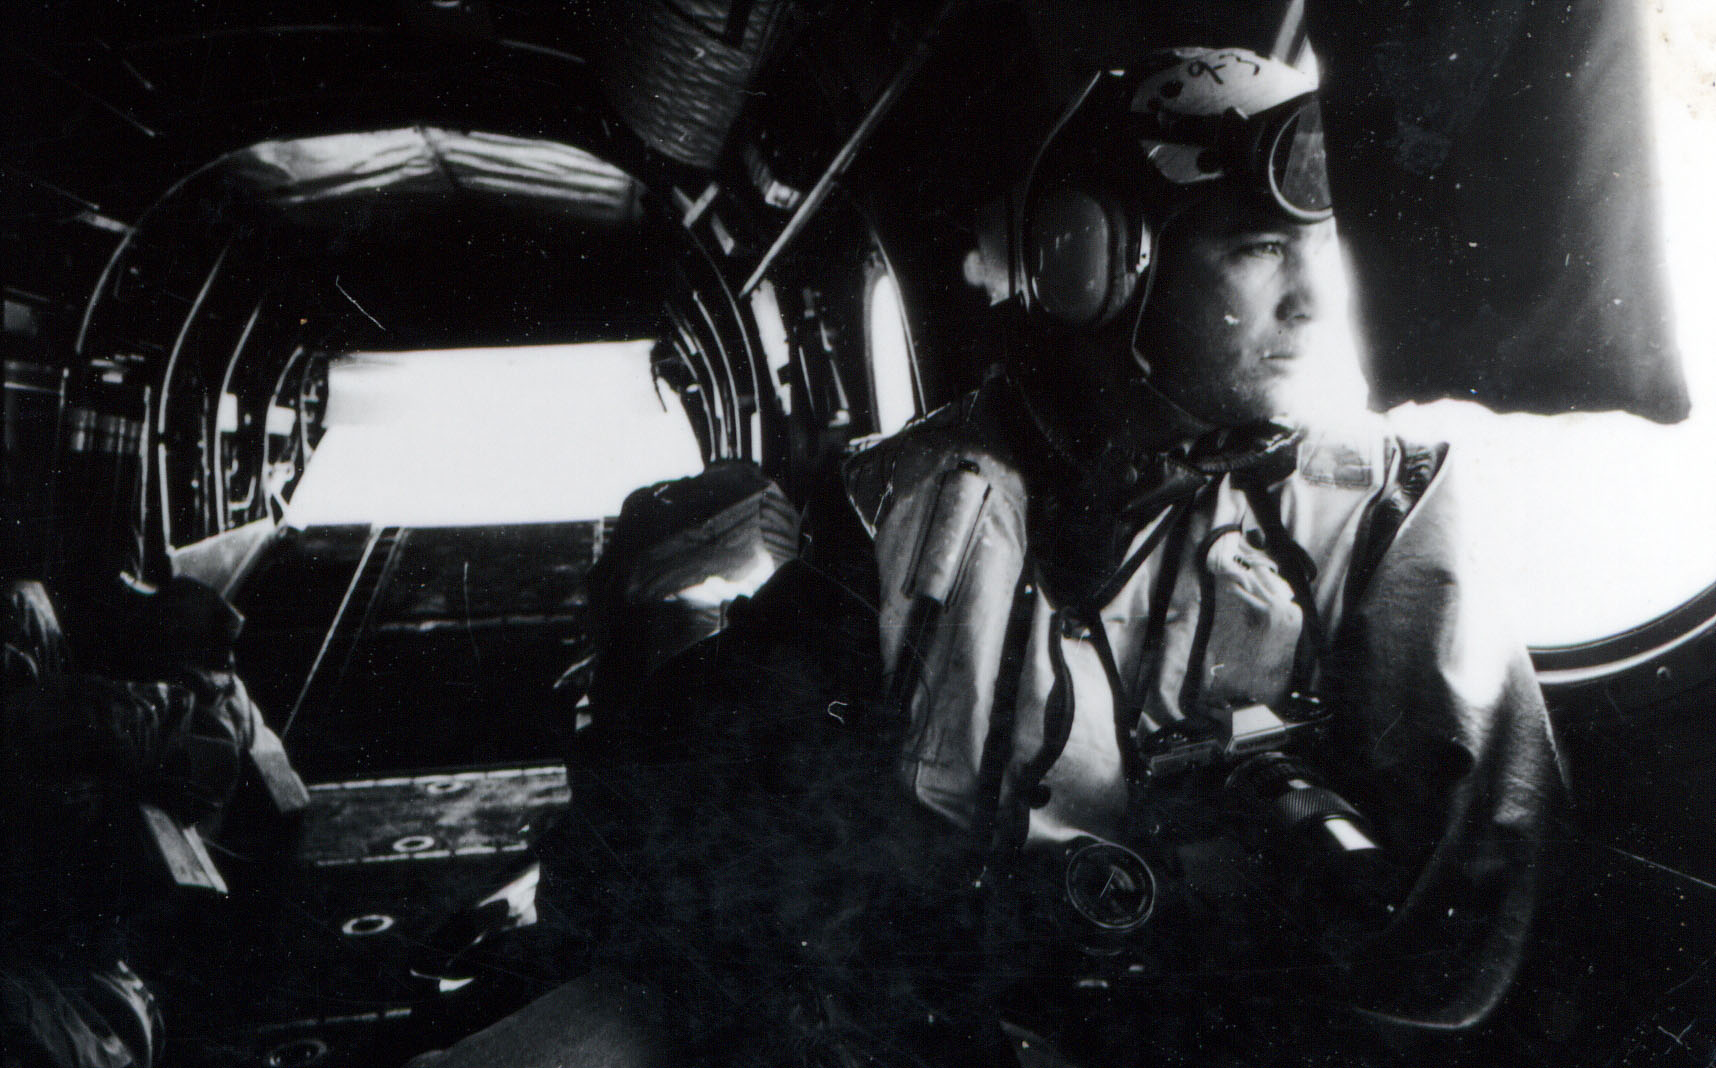 Marco Lupis on board of an US-Army helicopter, going to the  American aircraft-carrier USS Roosevelt during the last Kosovo war